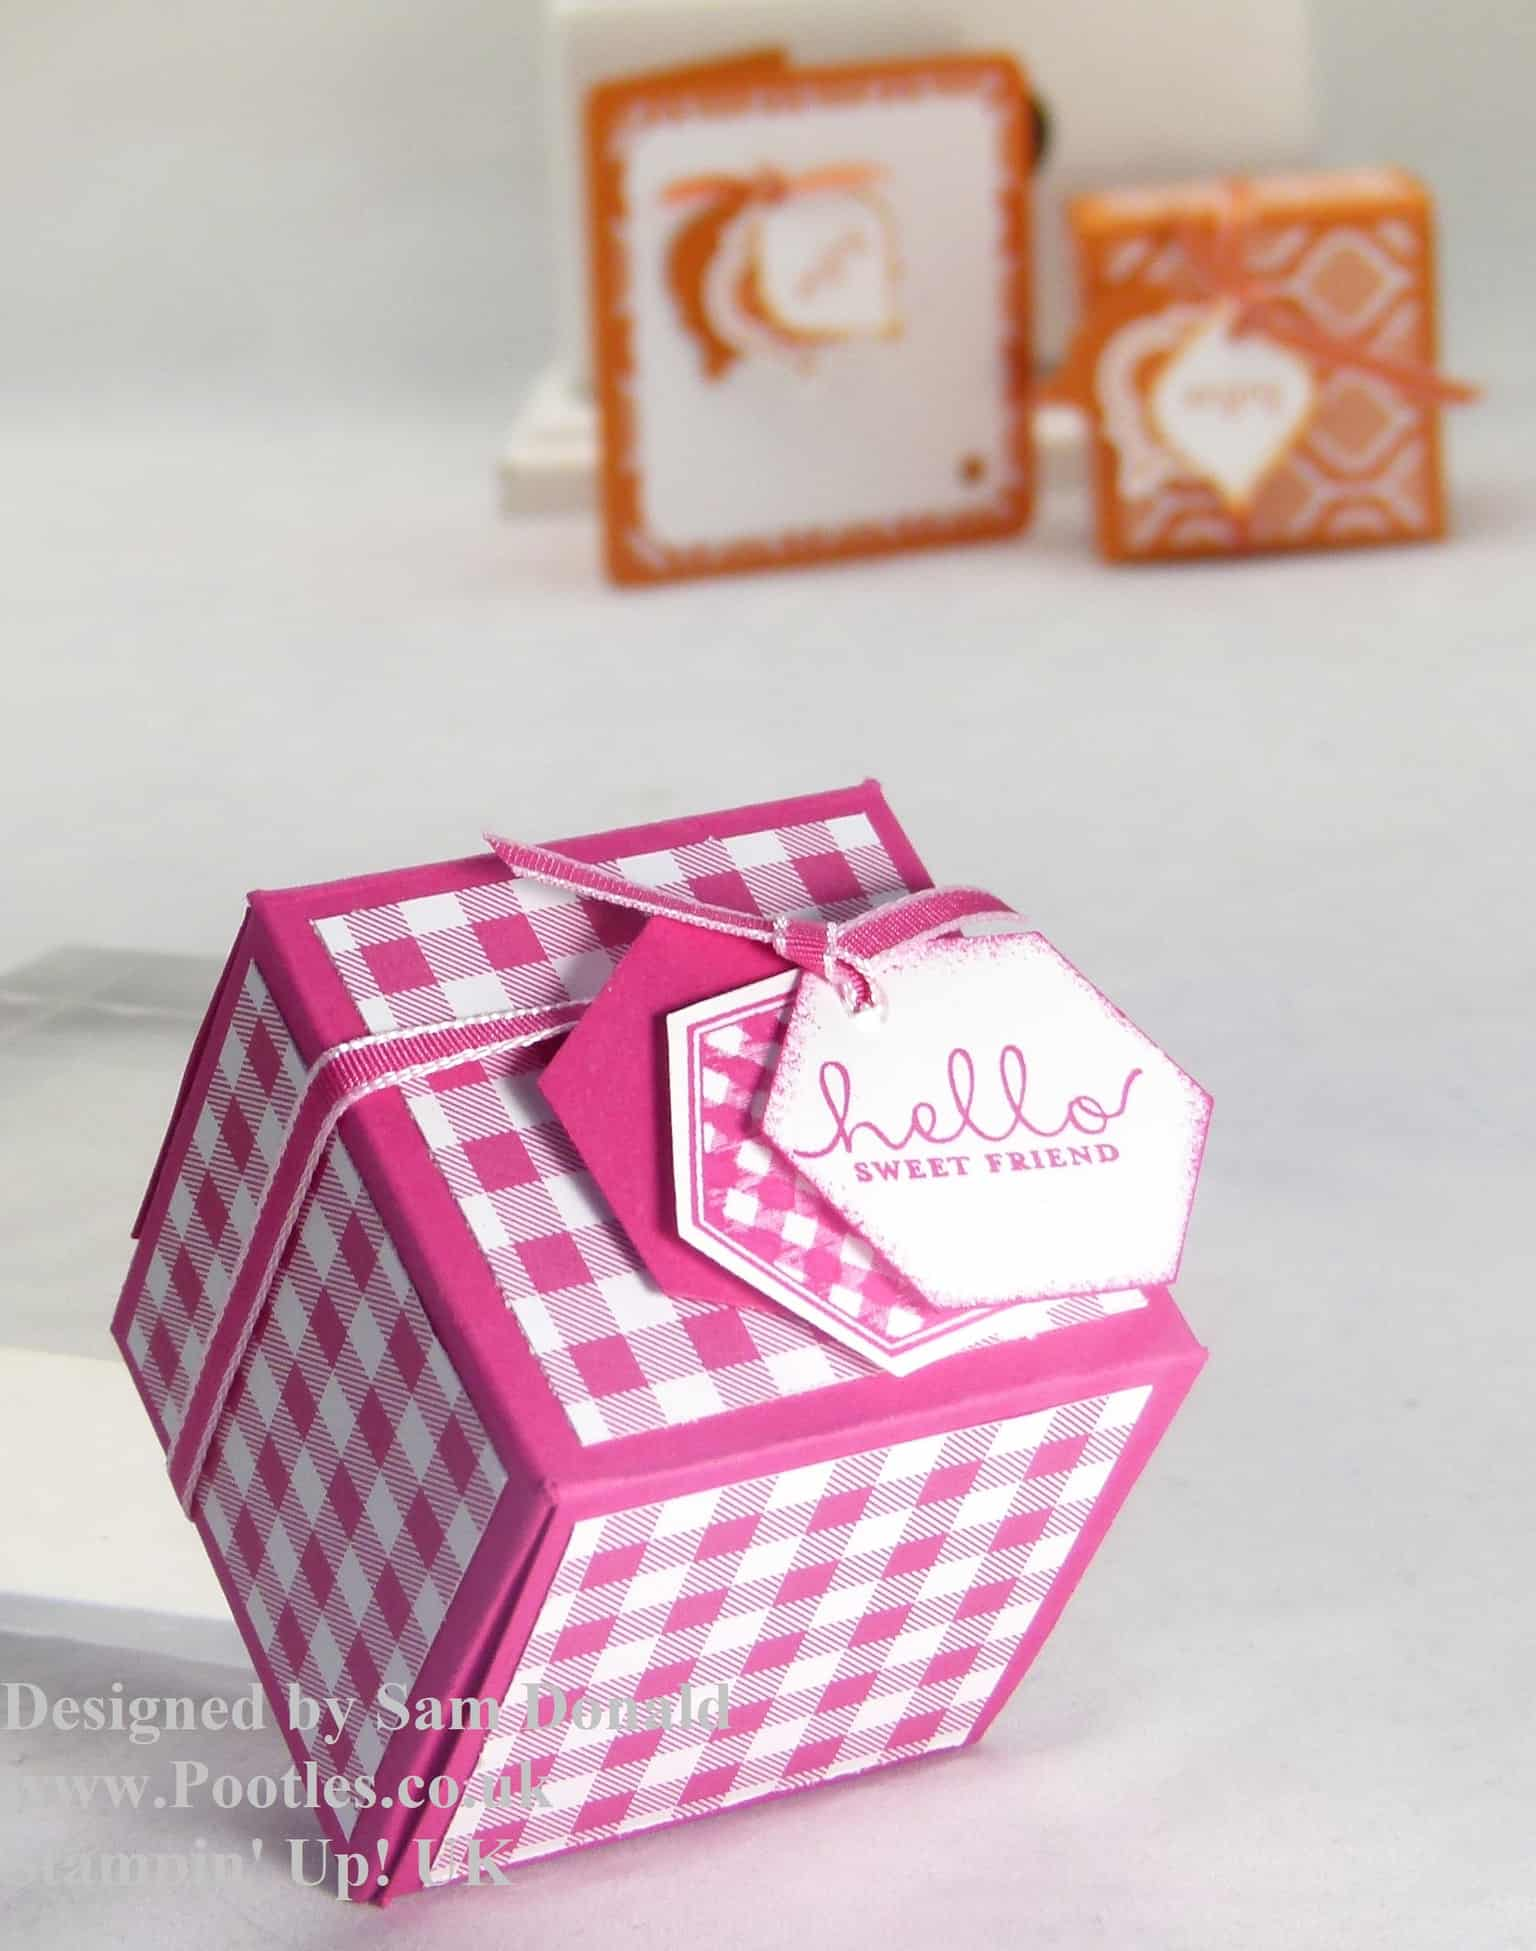 Pootles Stampin Up UK 2x2x2 Cube Fold Flat Favour Box 4